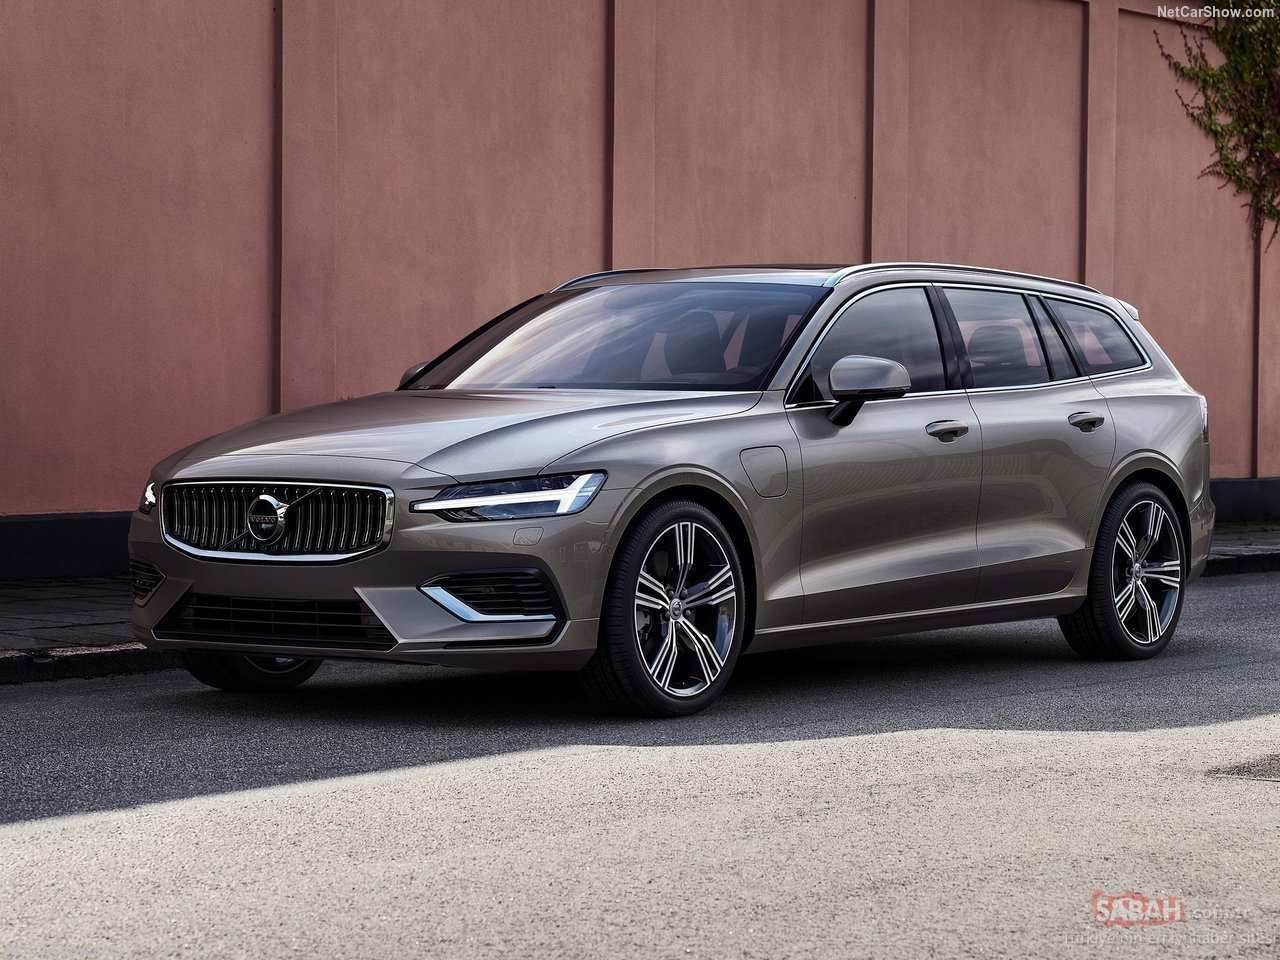 91 All New New 2019 Volvo V60 Spesification